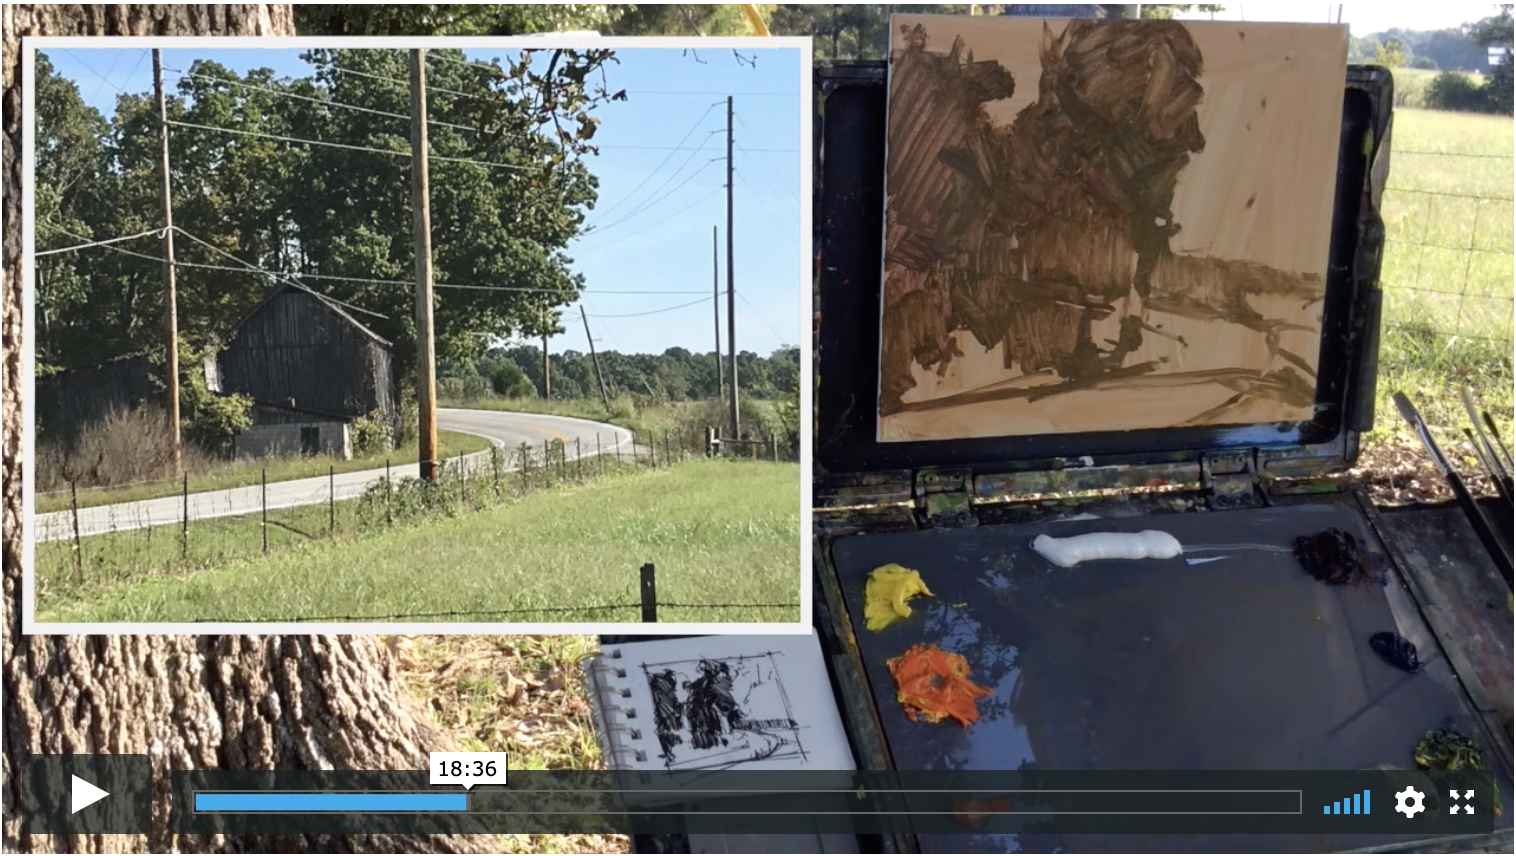 Demonstration: Plein air Light and Shadow Painting Video - Rent for $14.99 / Download for $49.99This is a complete demonstration painting light and shadow en plein air.